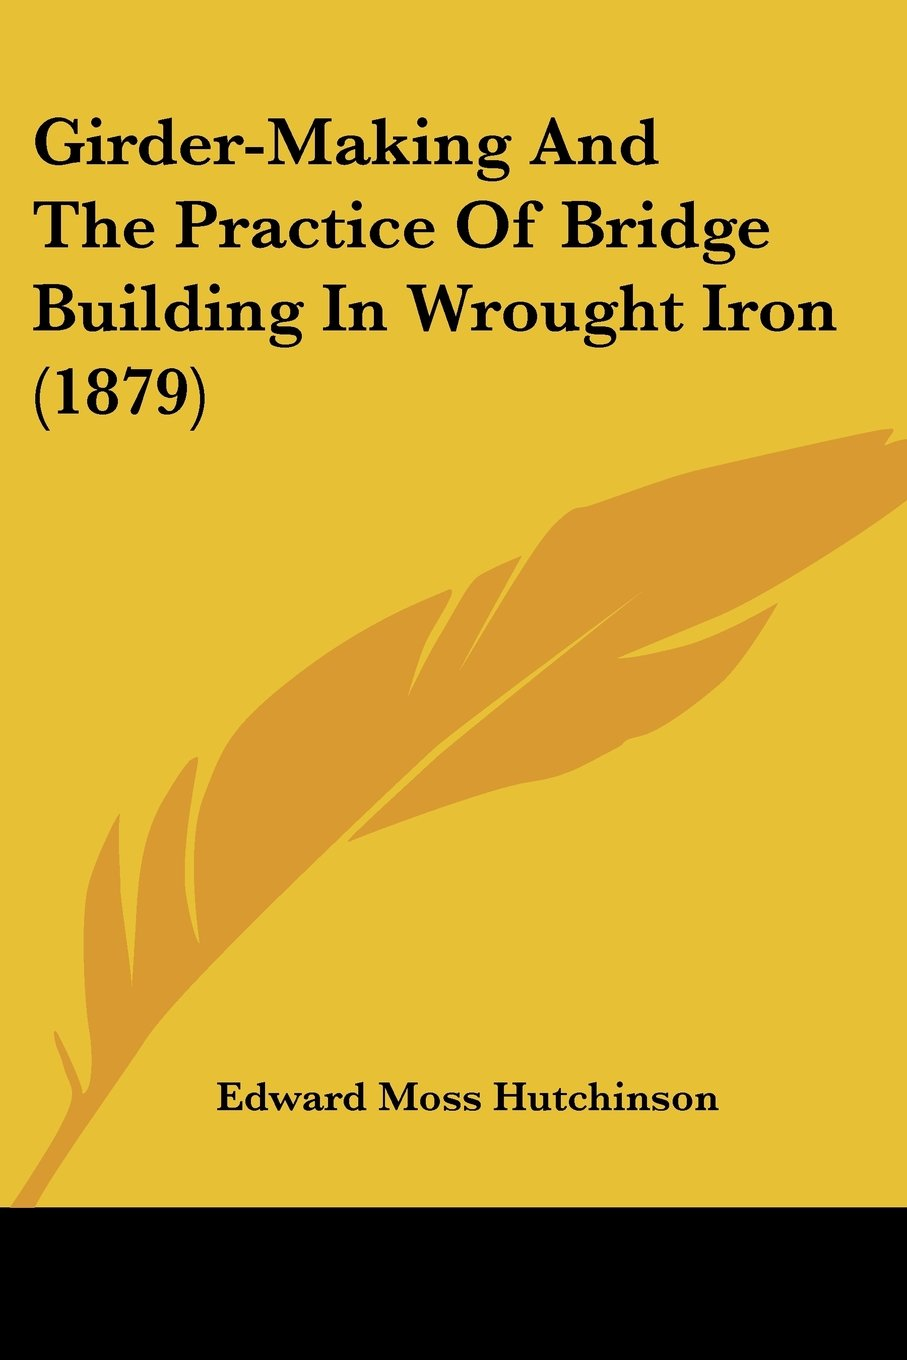 Read Online Girder-Making And The Practice Of Bridge Building In Wrought Iron (1879) ebook